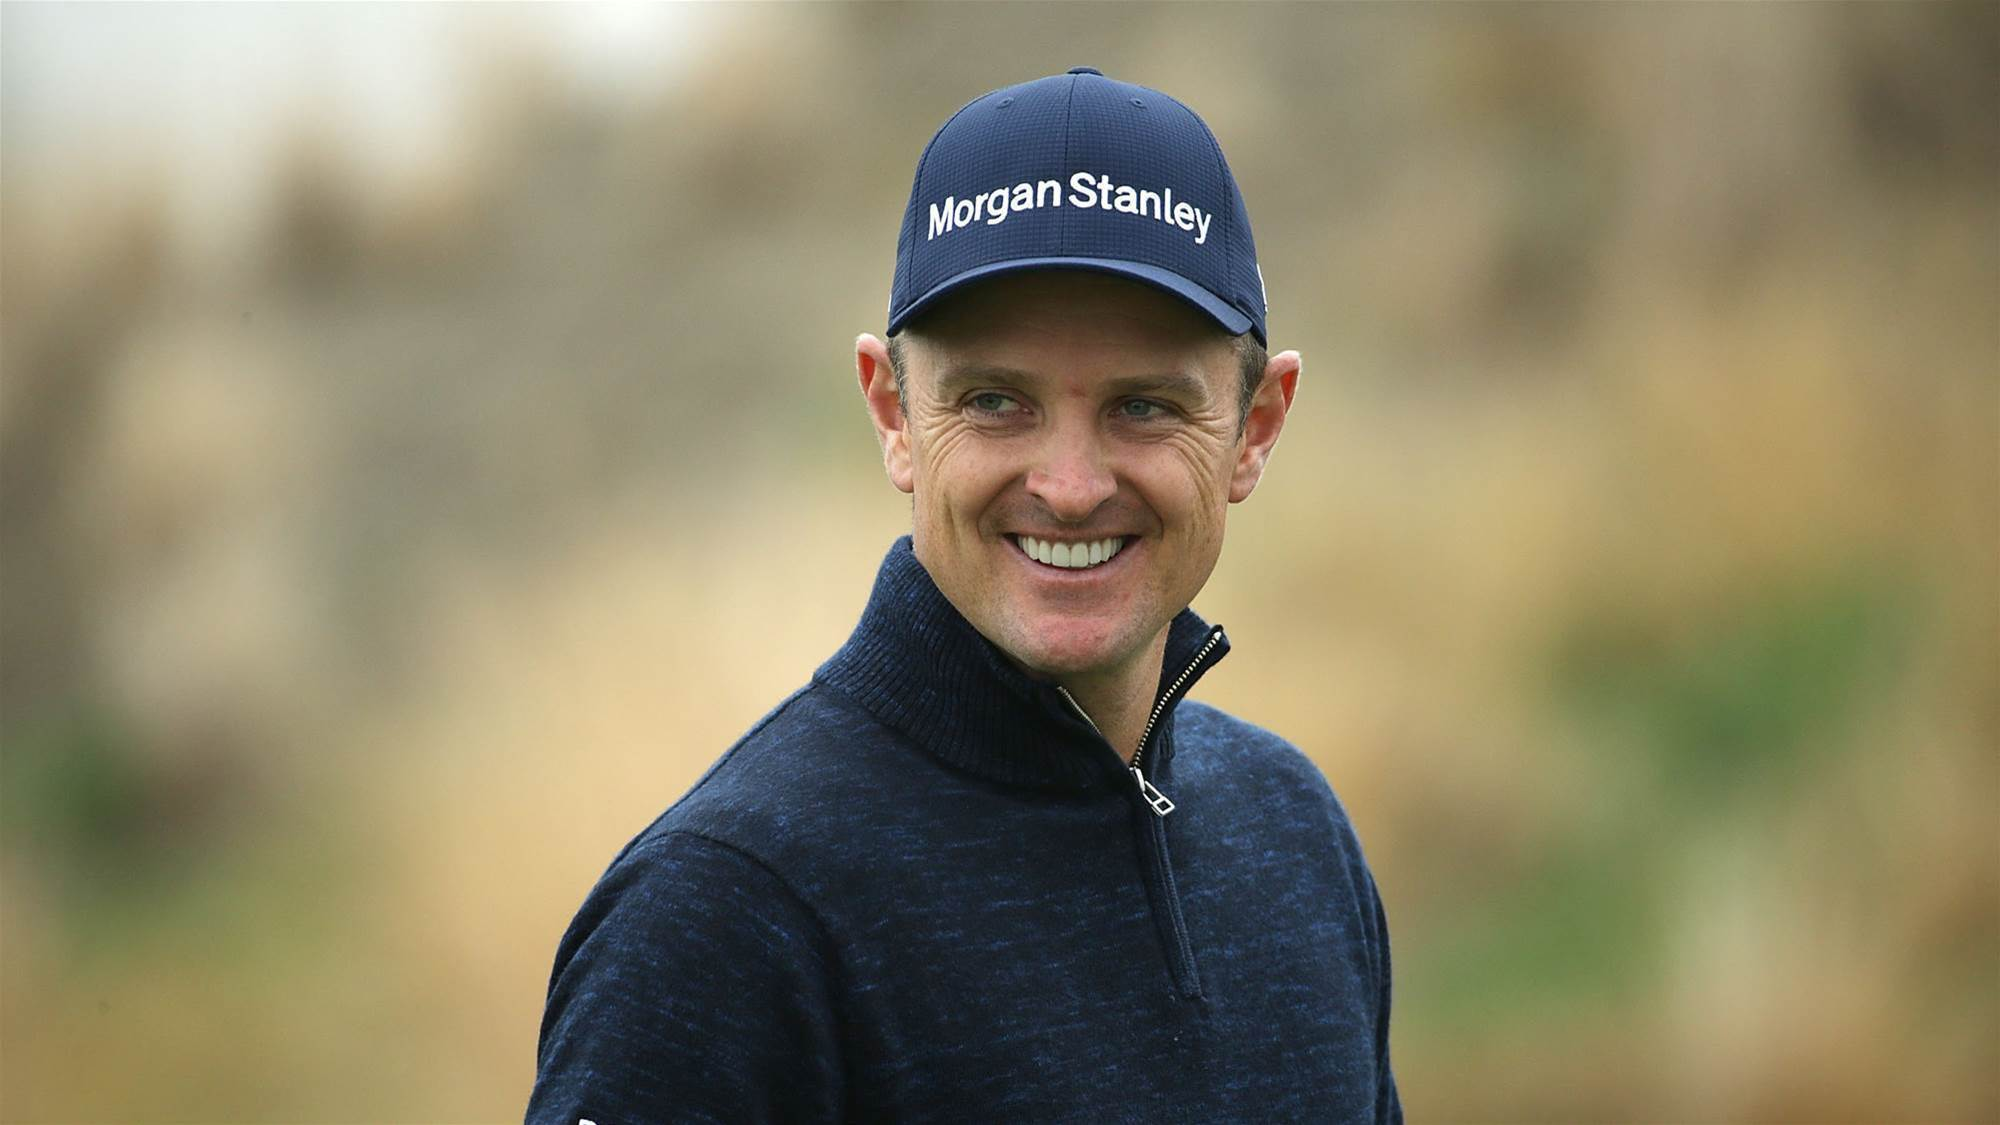 Justin Rose to make 2019 debut as World No.1